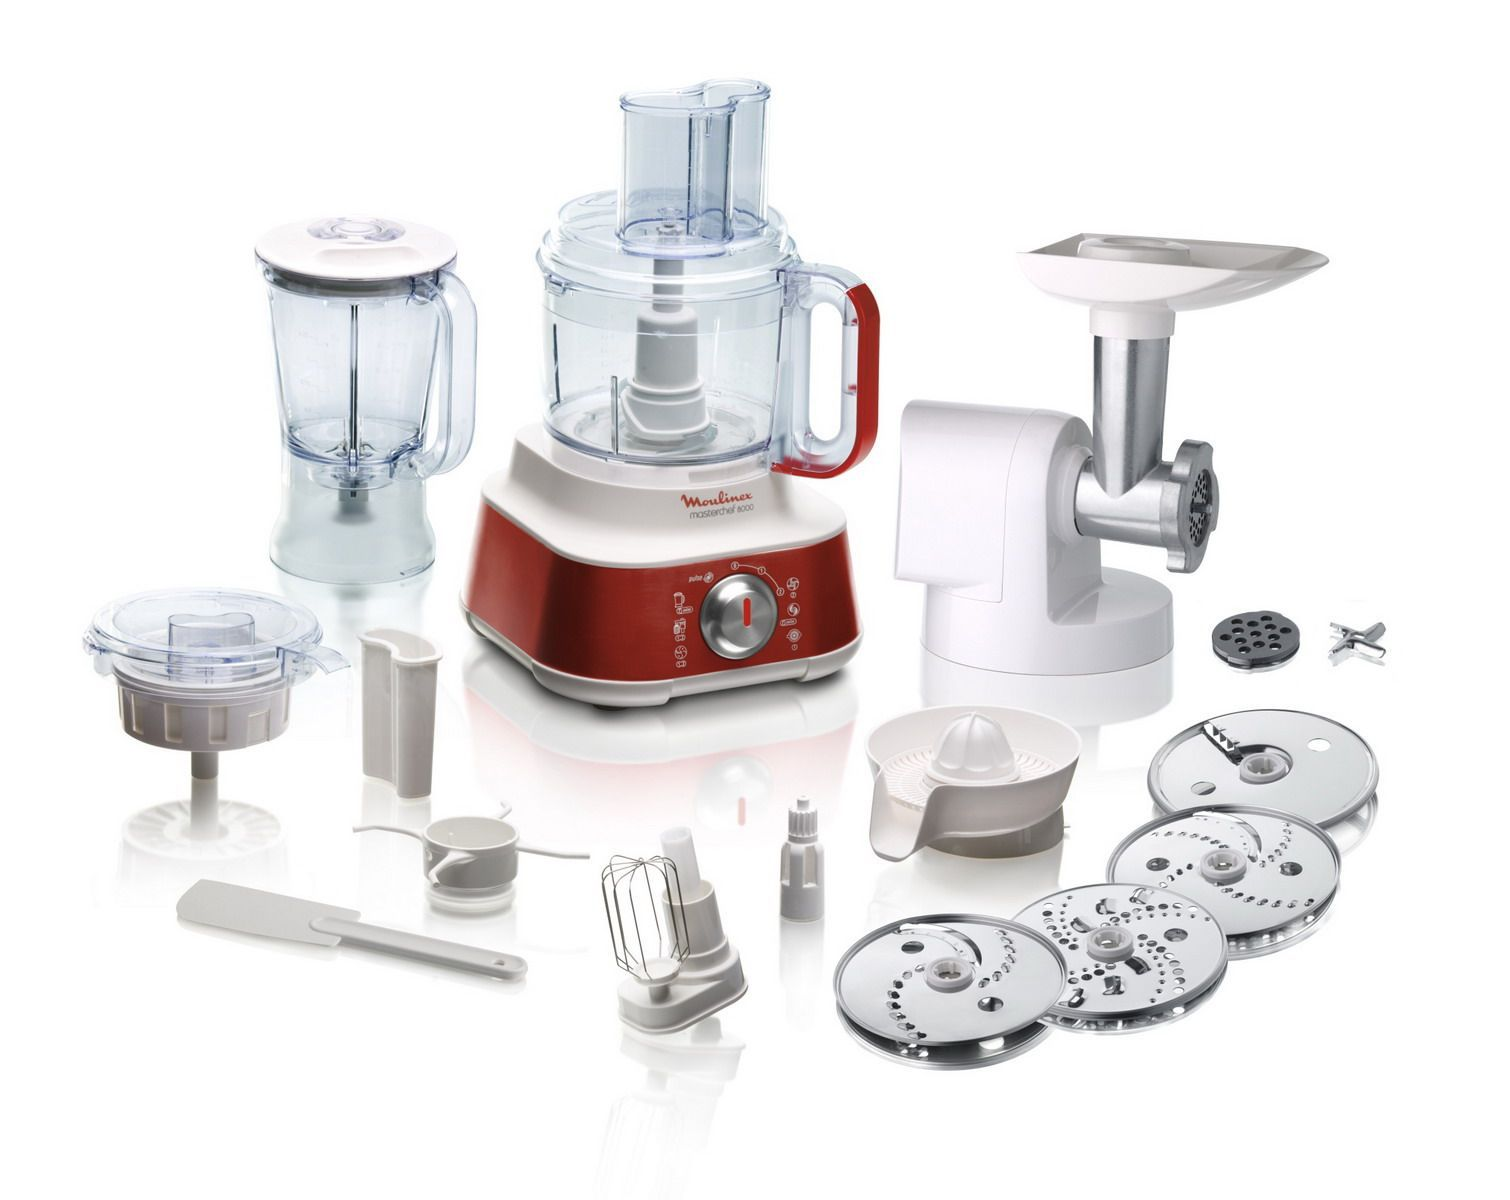 masterchef 8000 accessoires